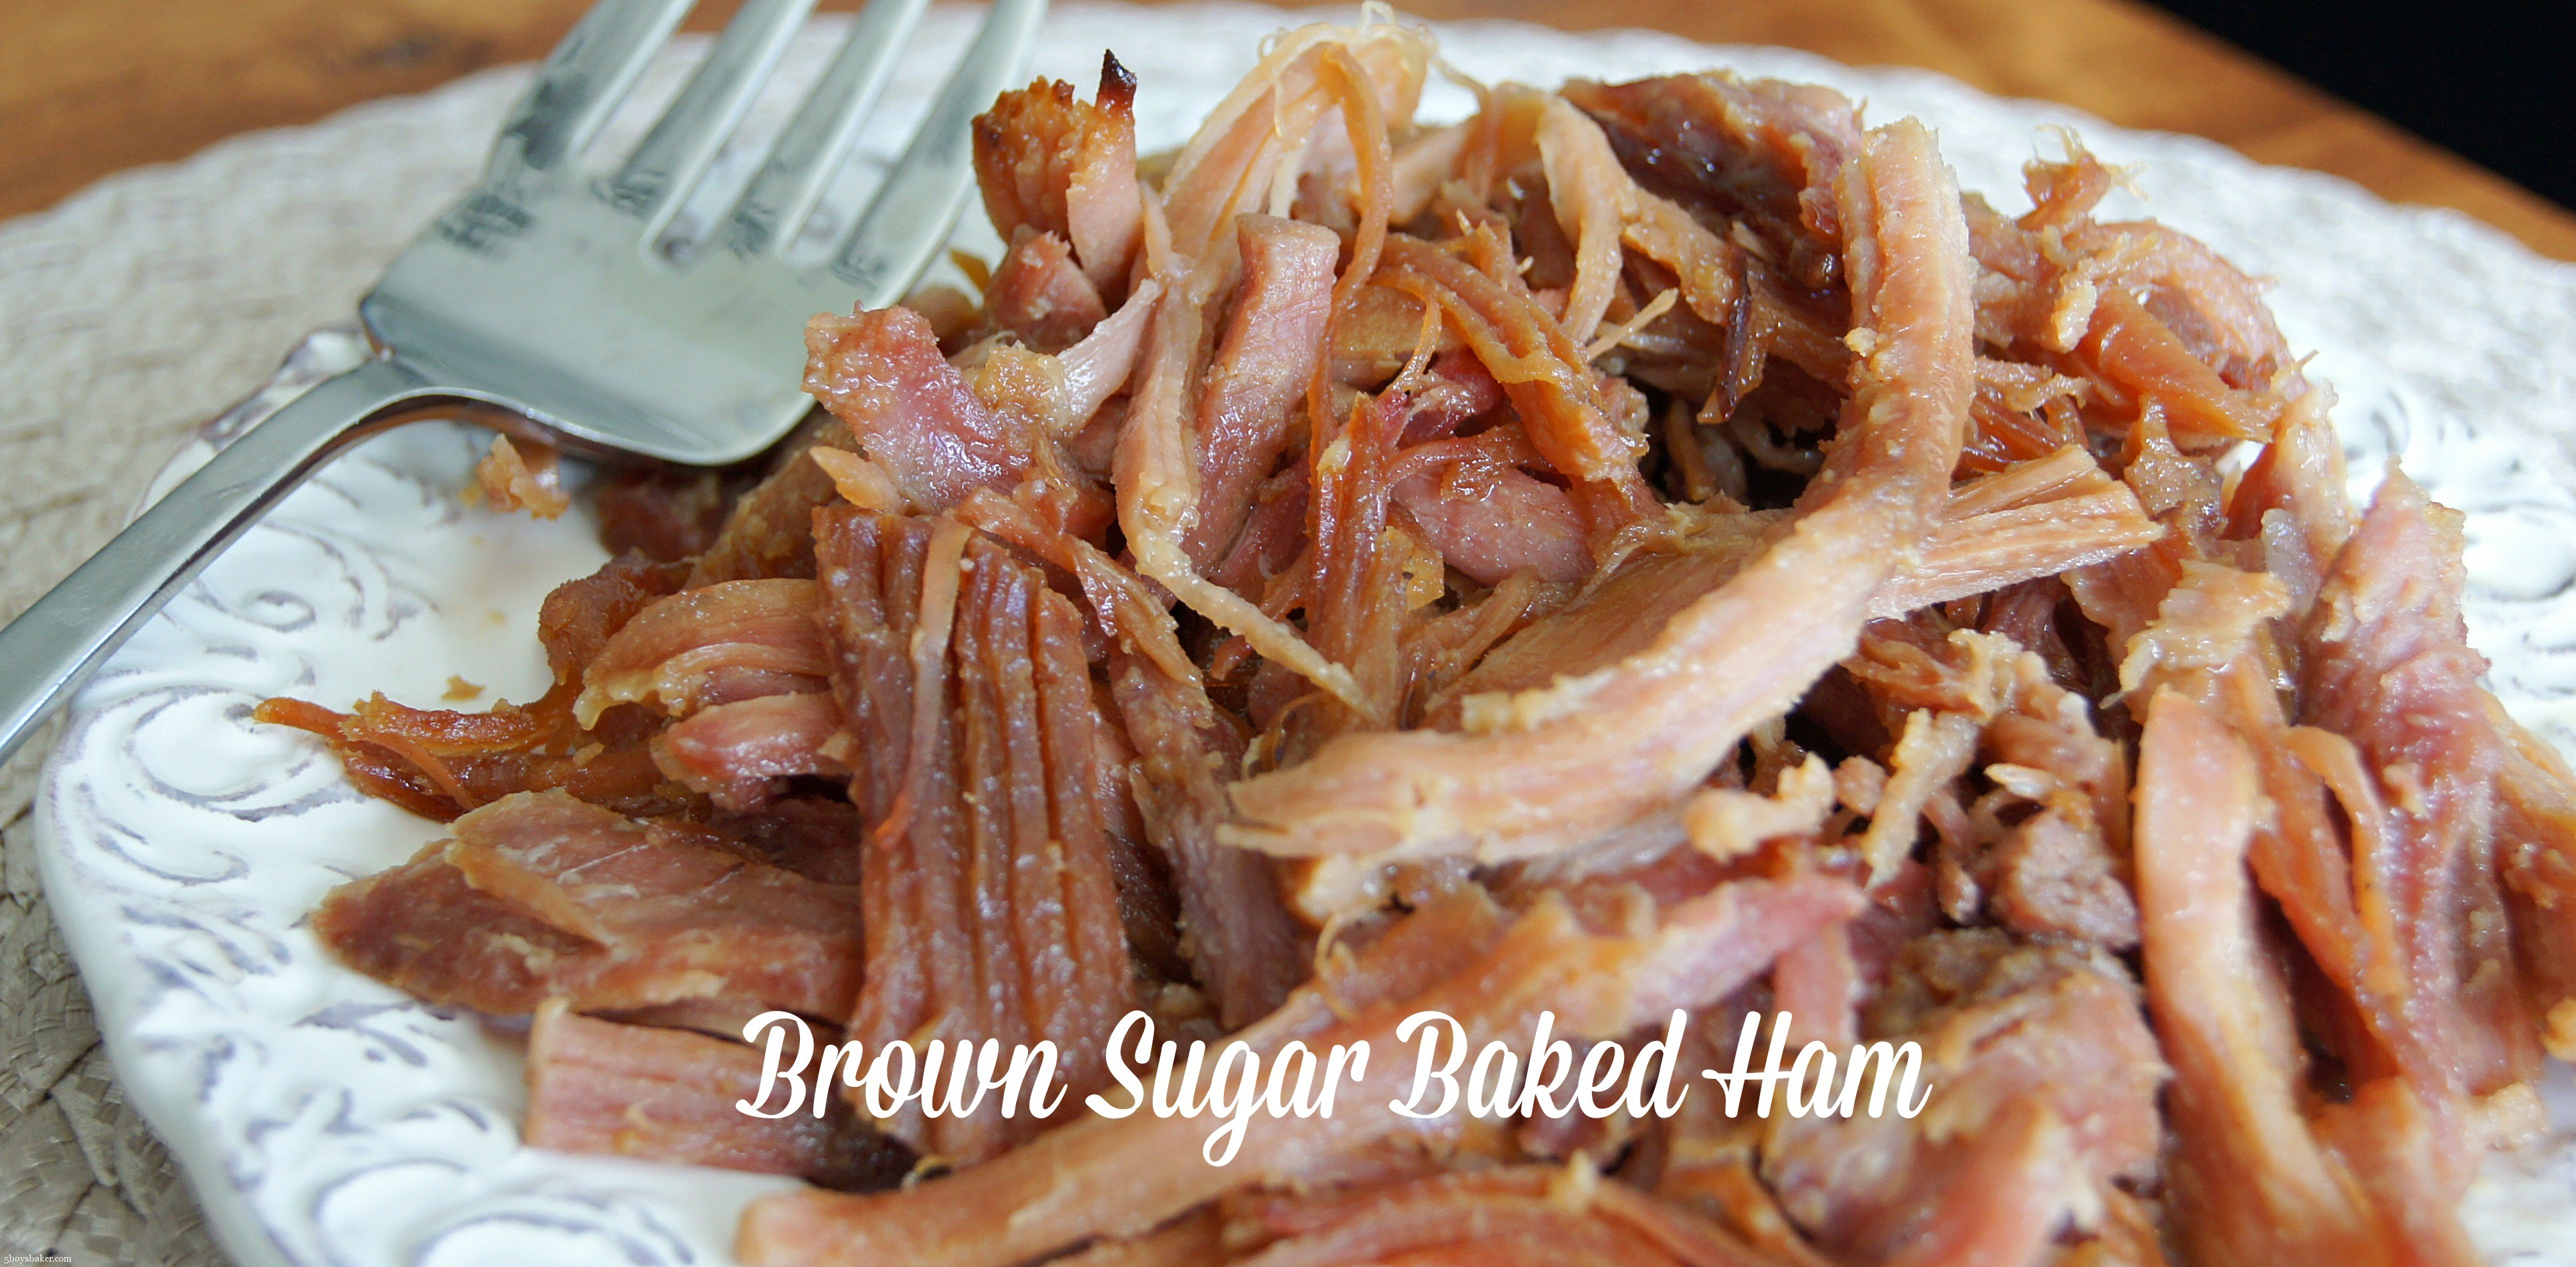 Plate of Brown Sugar Baked Ham